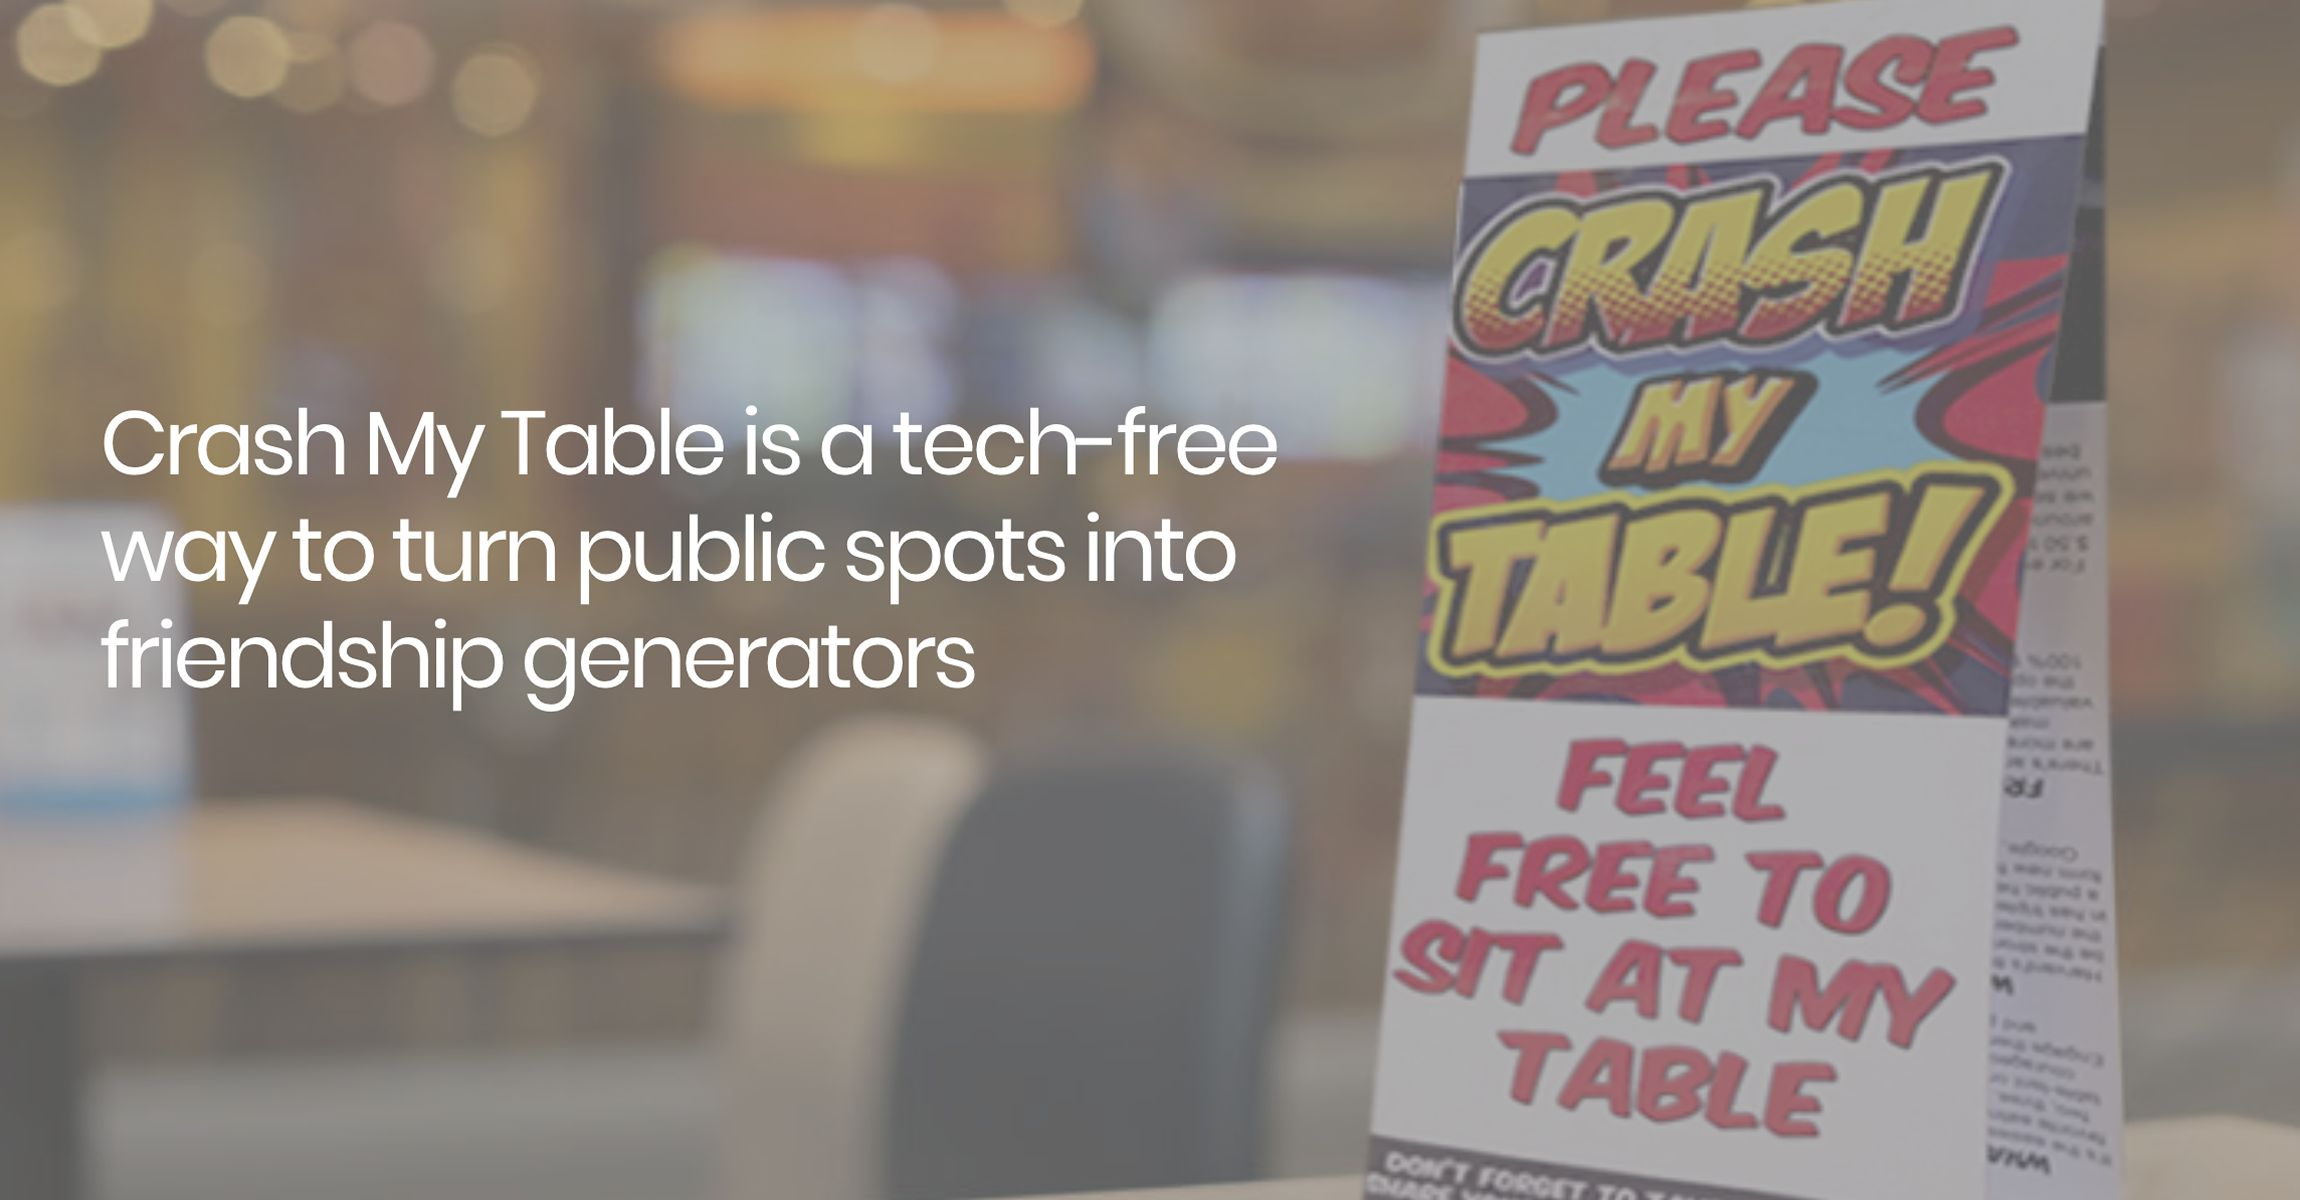 Will a Mother's New Non-Tech Kickstarter Invention Help Flood Restaurants with Patrons?